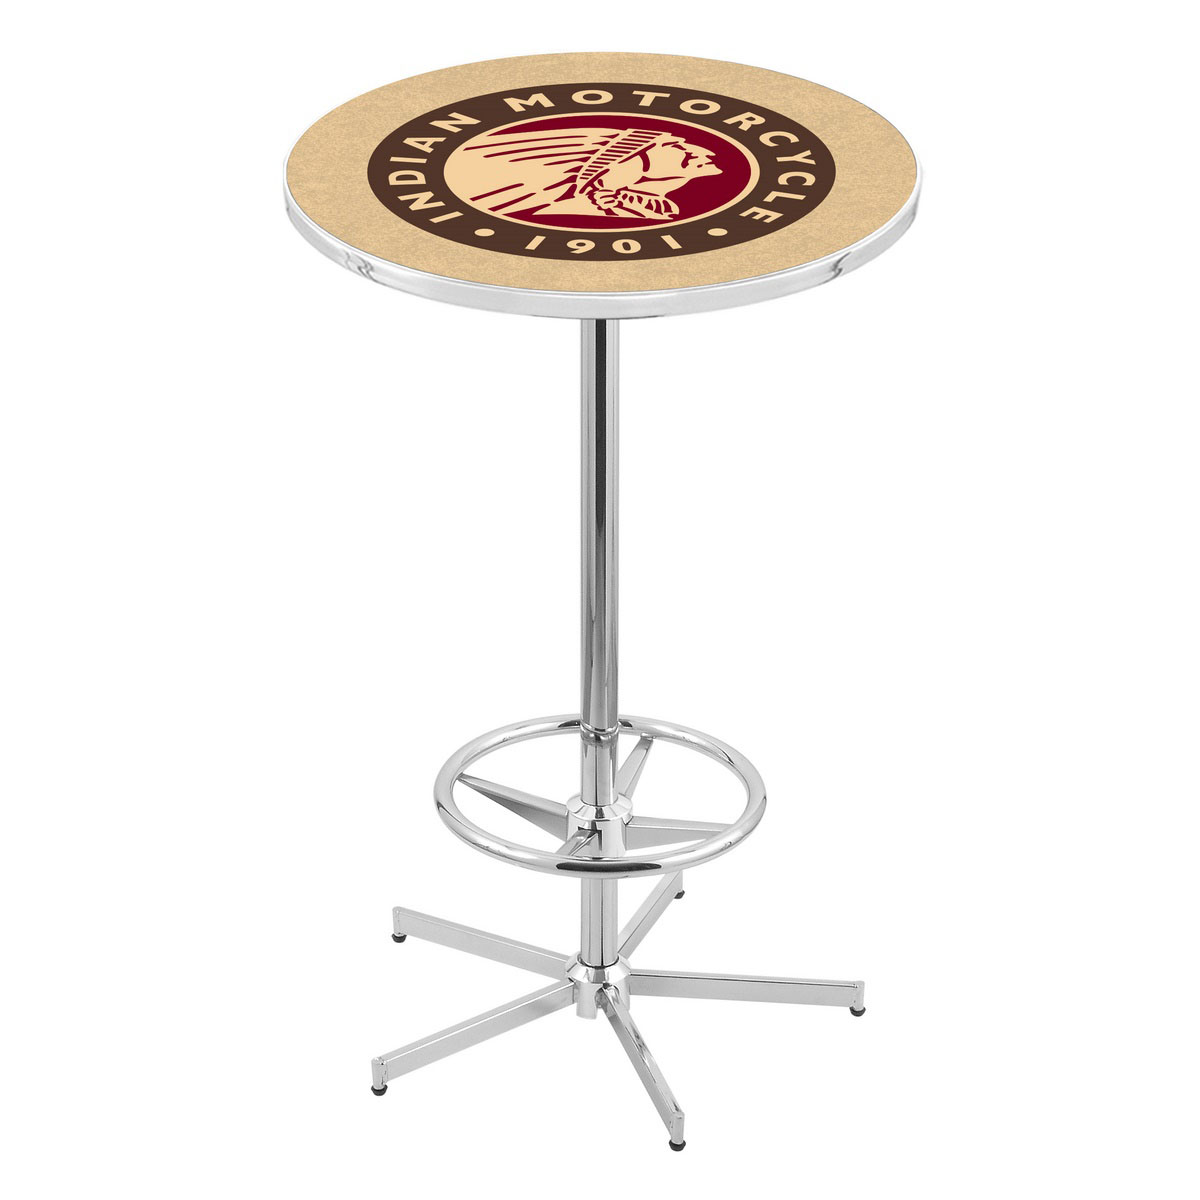 Magnificent Chrome Indian Motorcycle Pub Table Product Photo